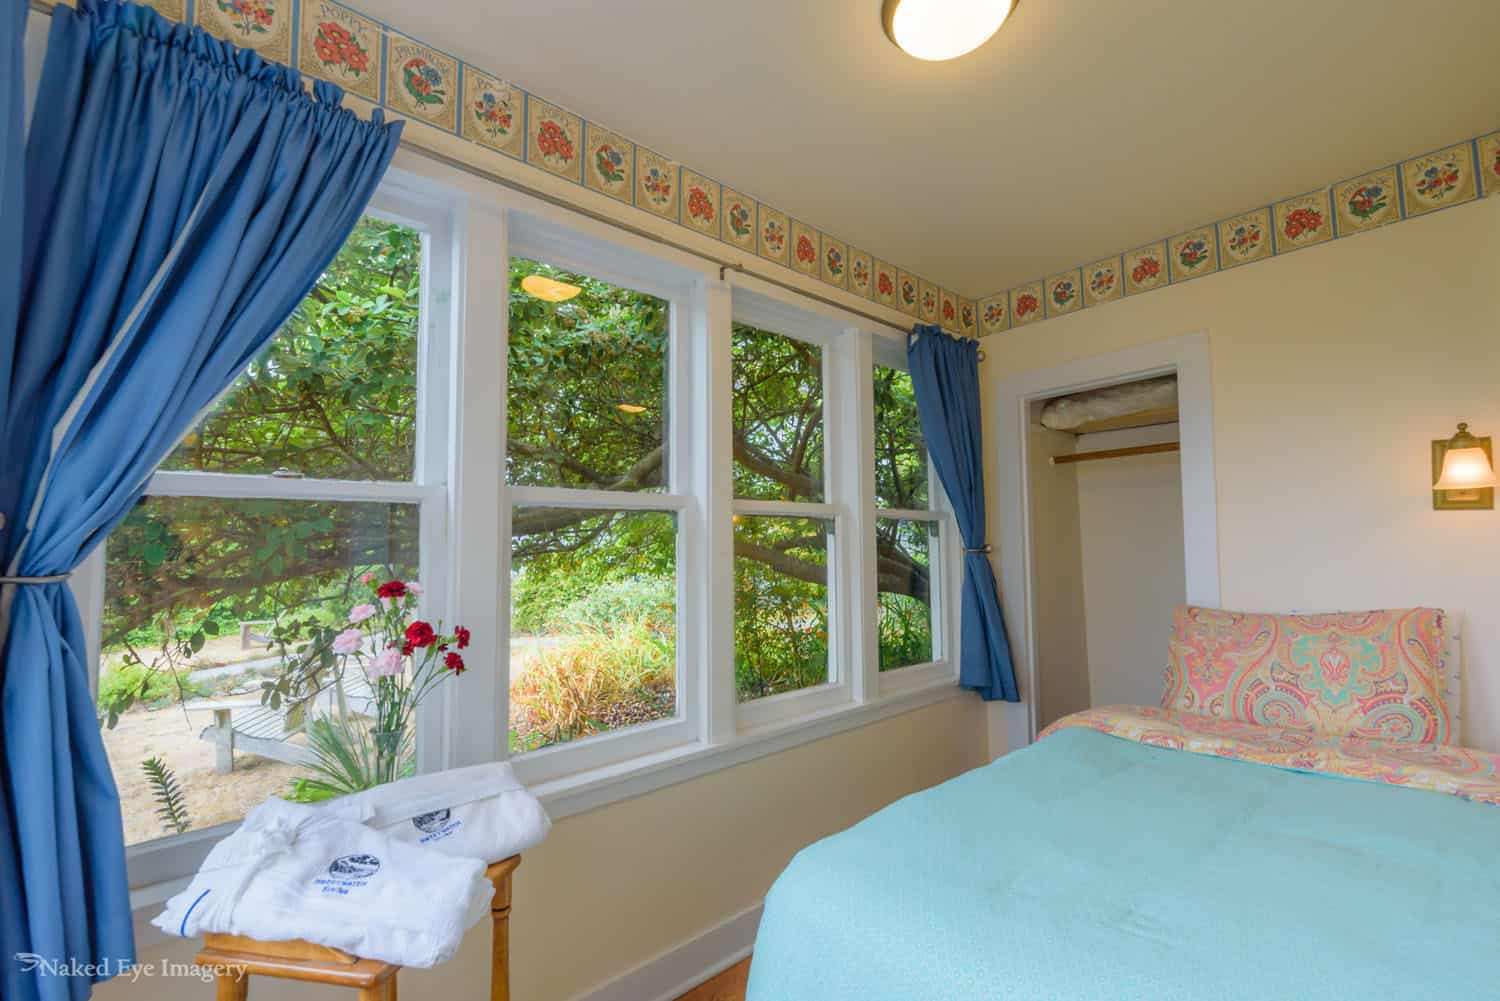 Country Suite - Bedroom with garden view